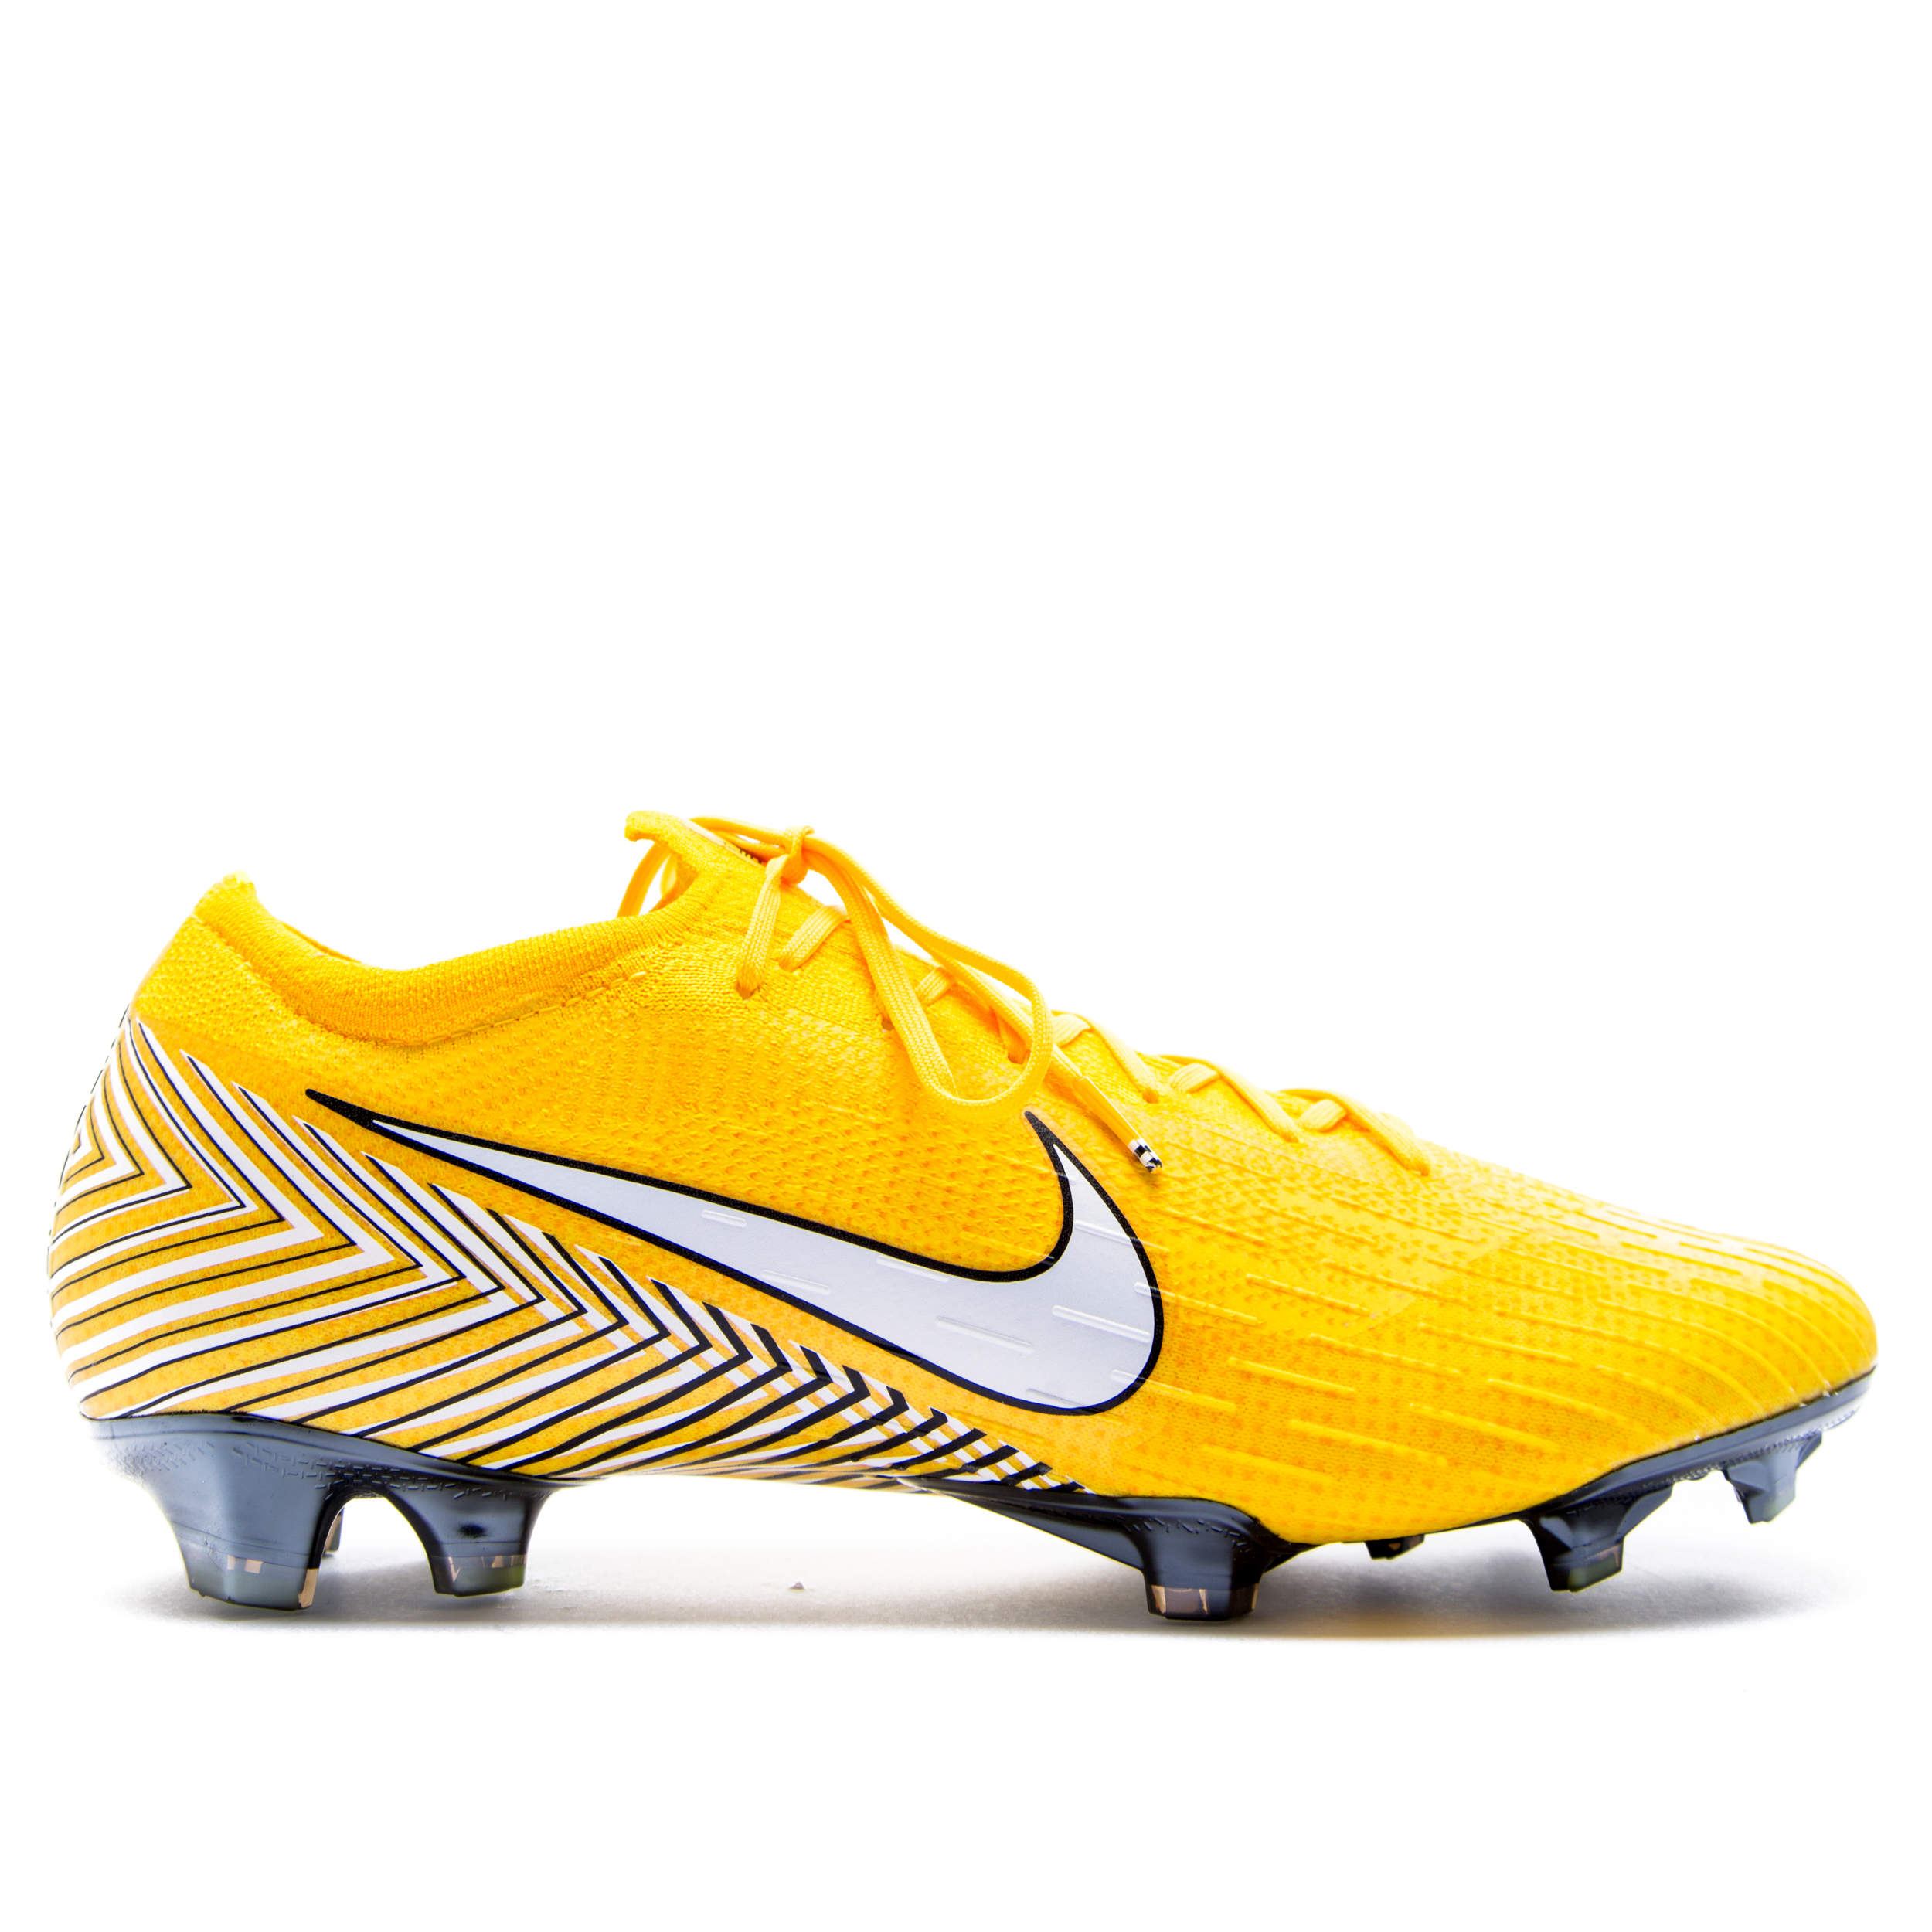 quite nice fd588 f2ff6 Nike Mercurial Vapor 360 Elite Neymar JR Meu Jogo 'My Game'